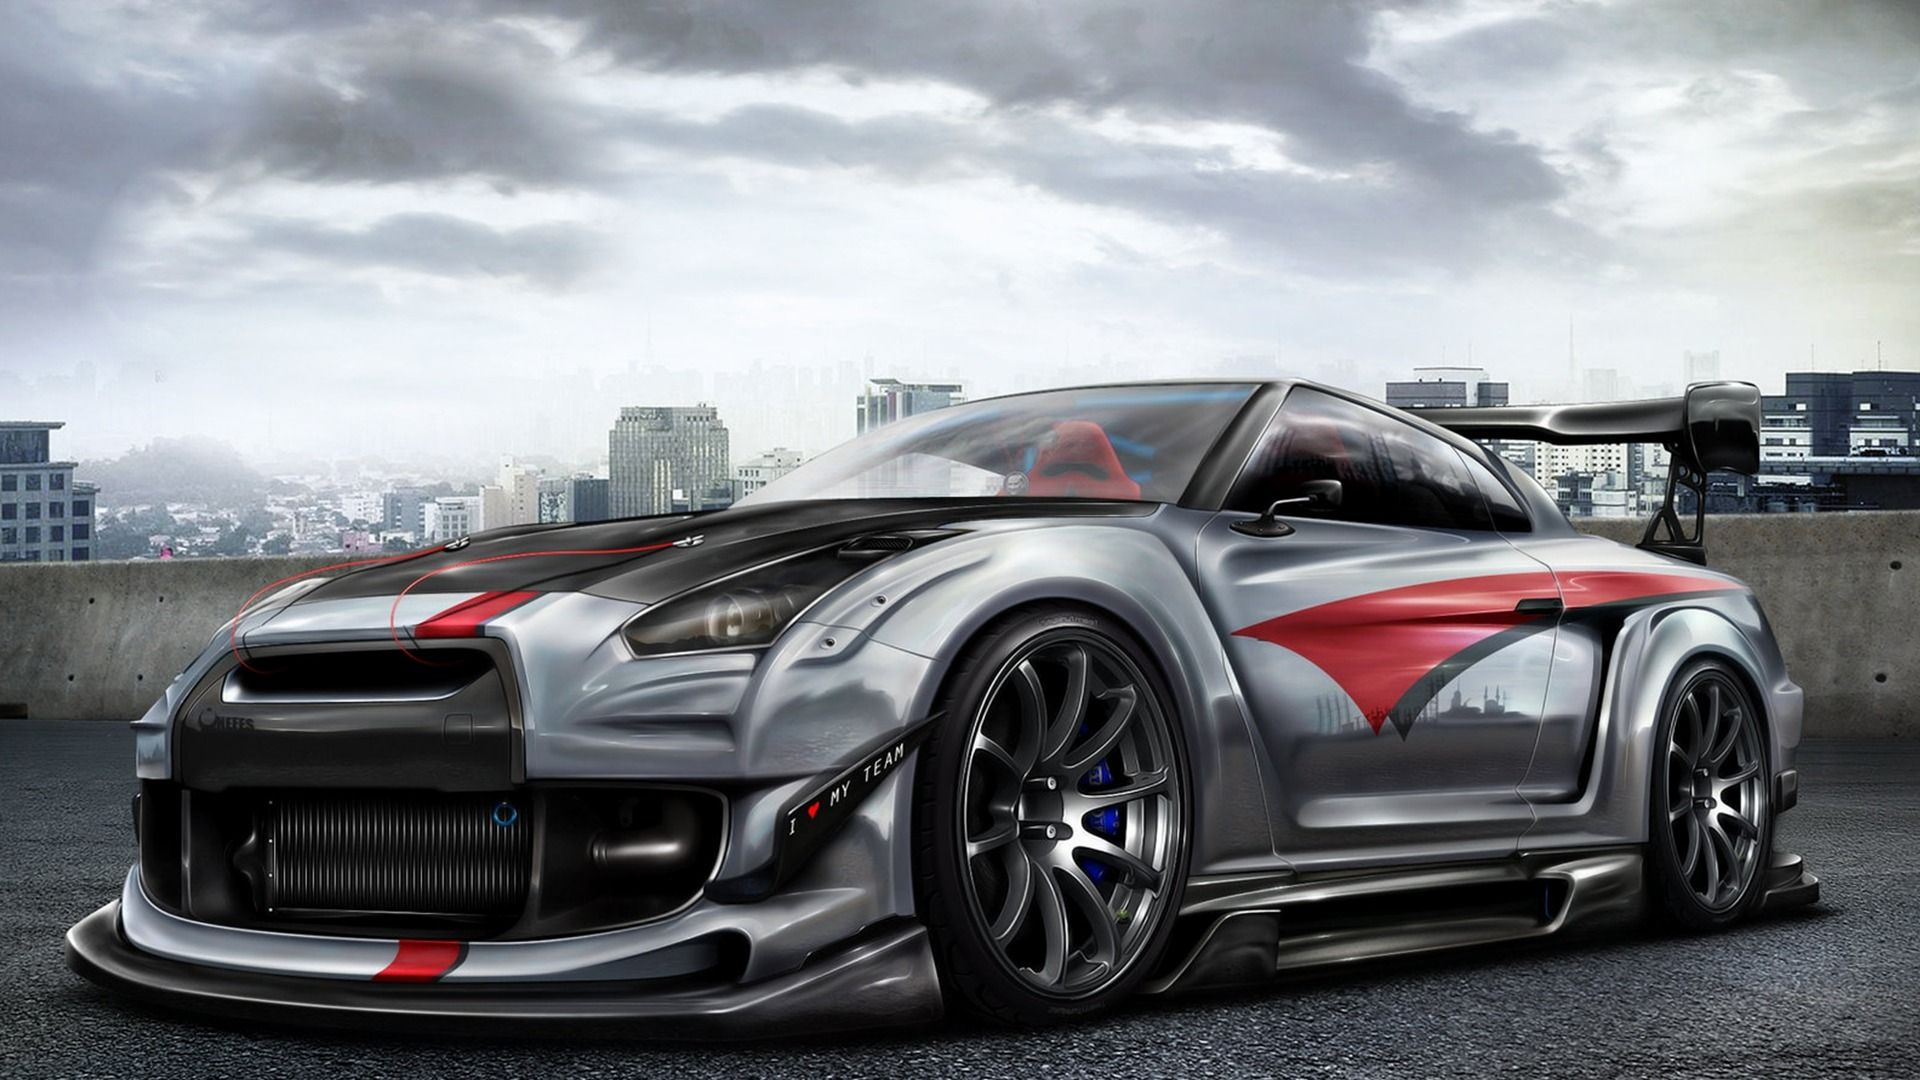 Custom Nissan Skyline Nissan Skyline Gtr R35 Wallpaper A Man Can